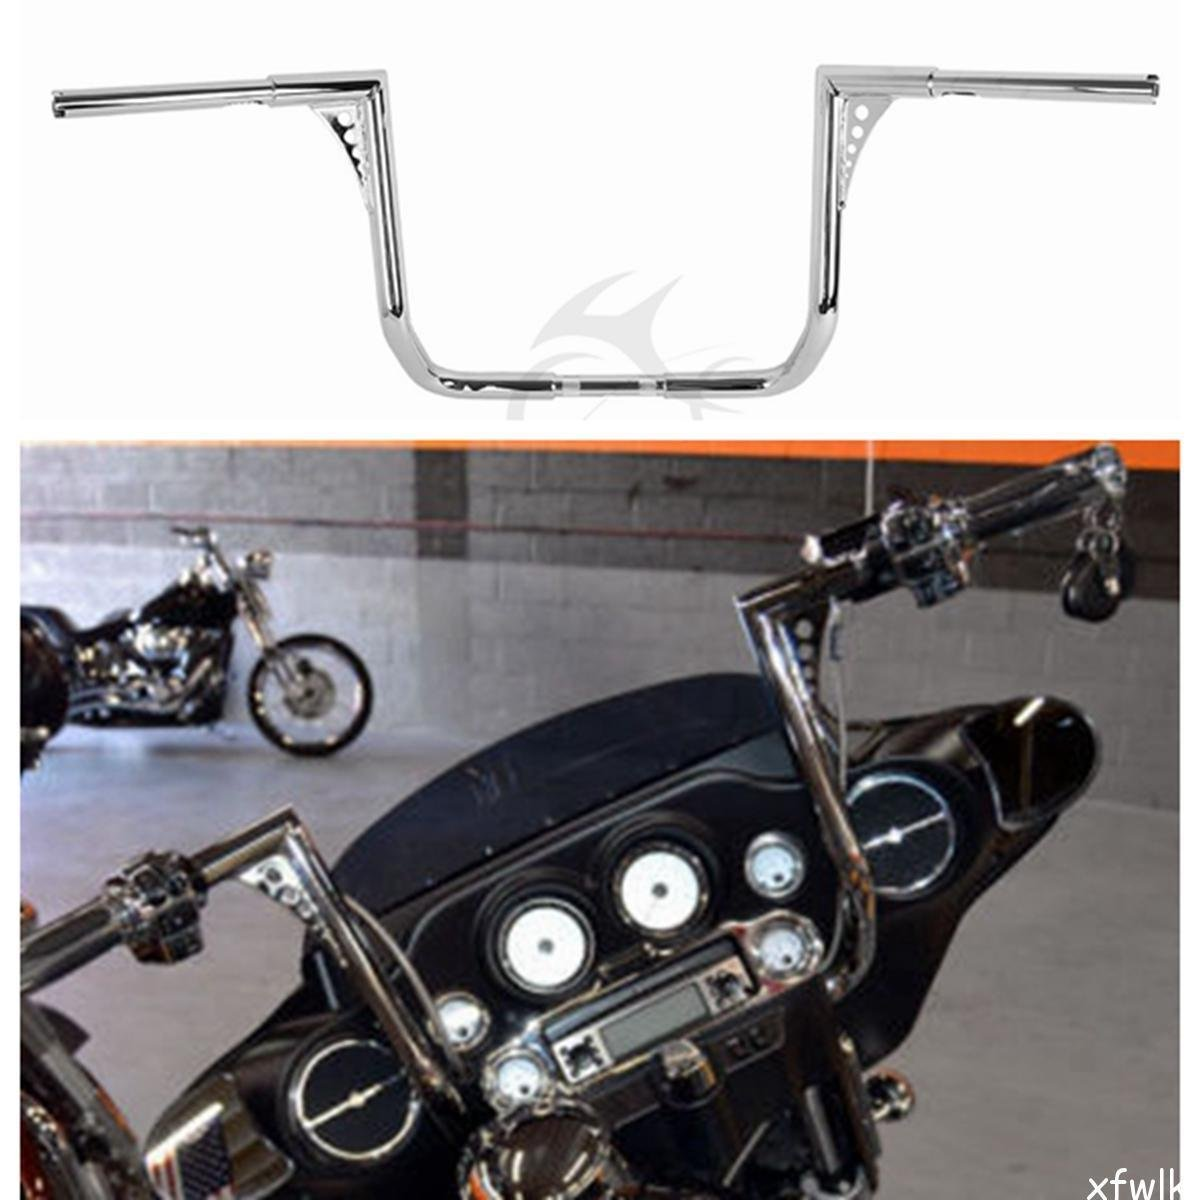 XFMT Chrome 16 Rise 1-1//4 Ape Hanger HandleBar Compatible with Harley Dressers Baggers Touring